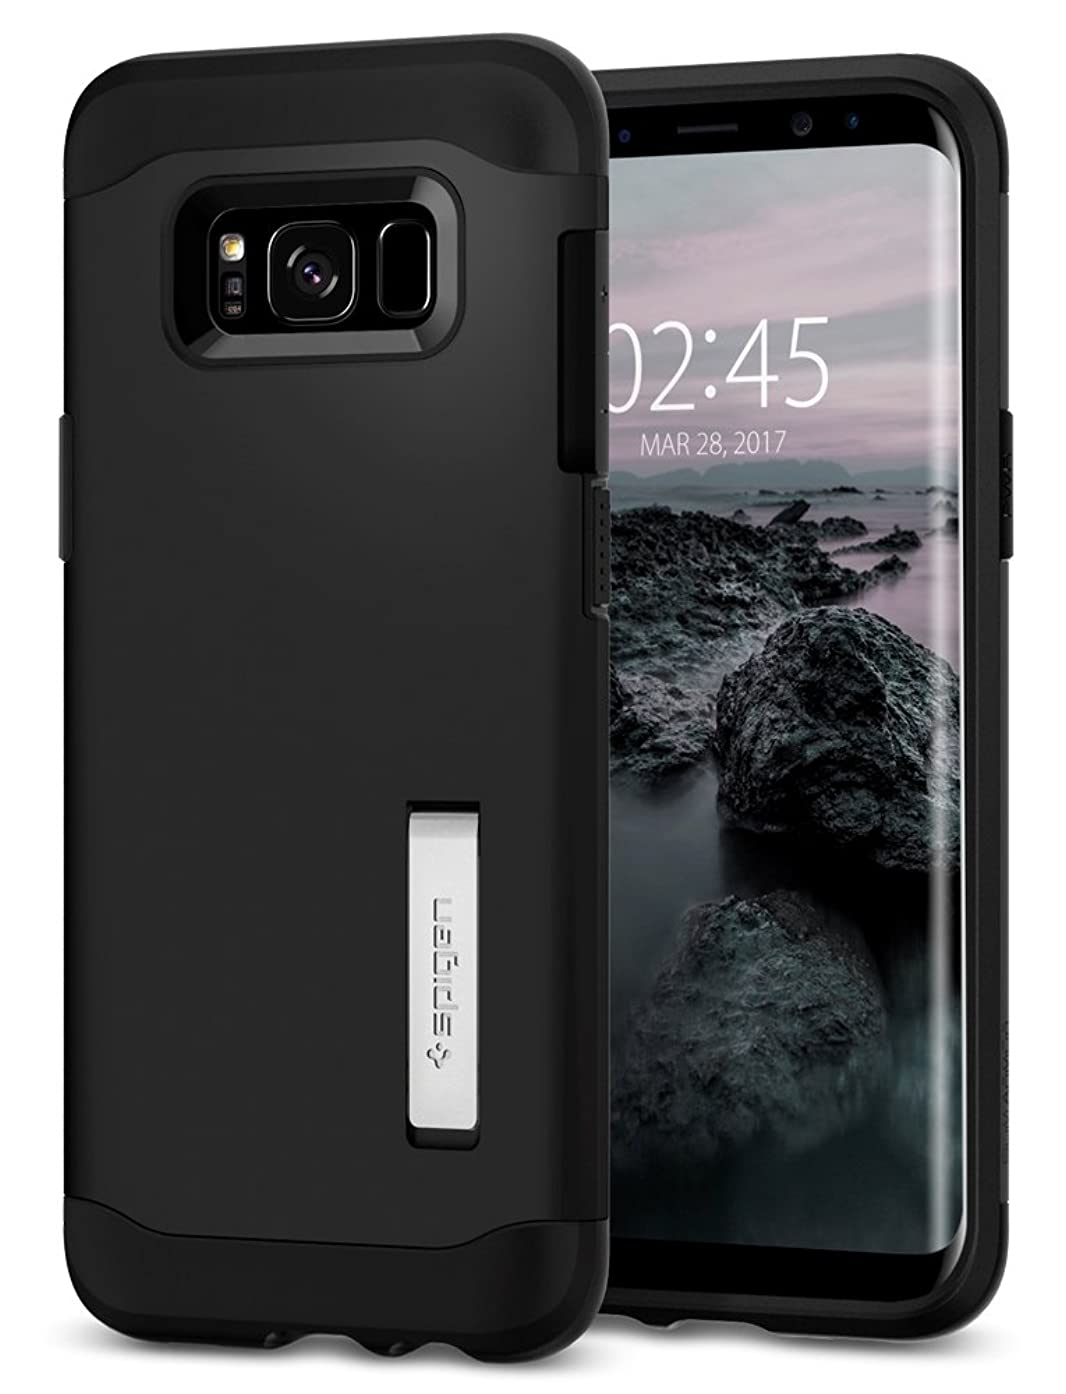 Spigen Slim Armor S8 Case with Air Cushion Technology and Hybrid Drop Protection for Samsung S8 (2017) - Black